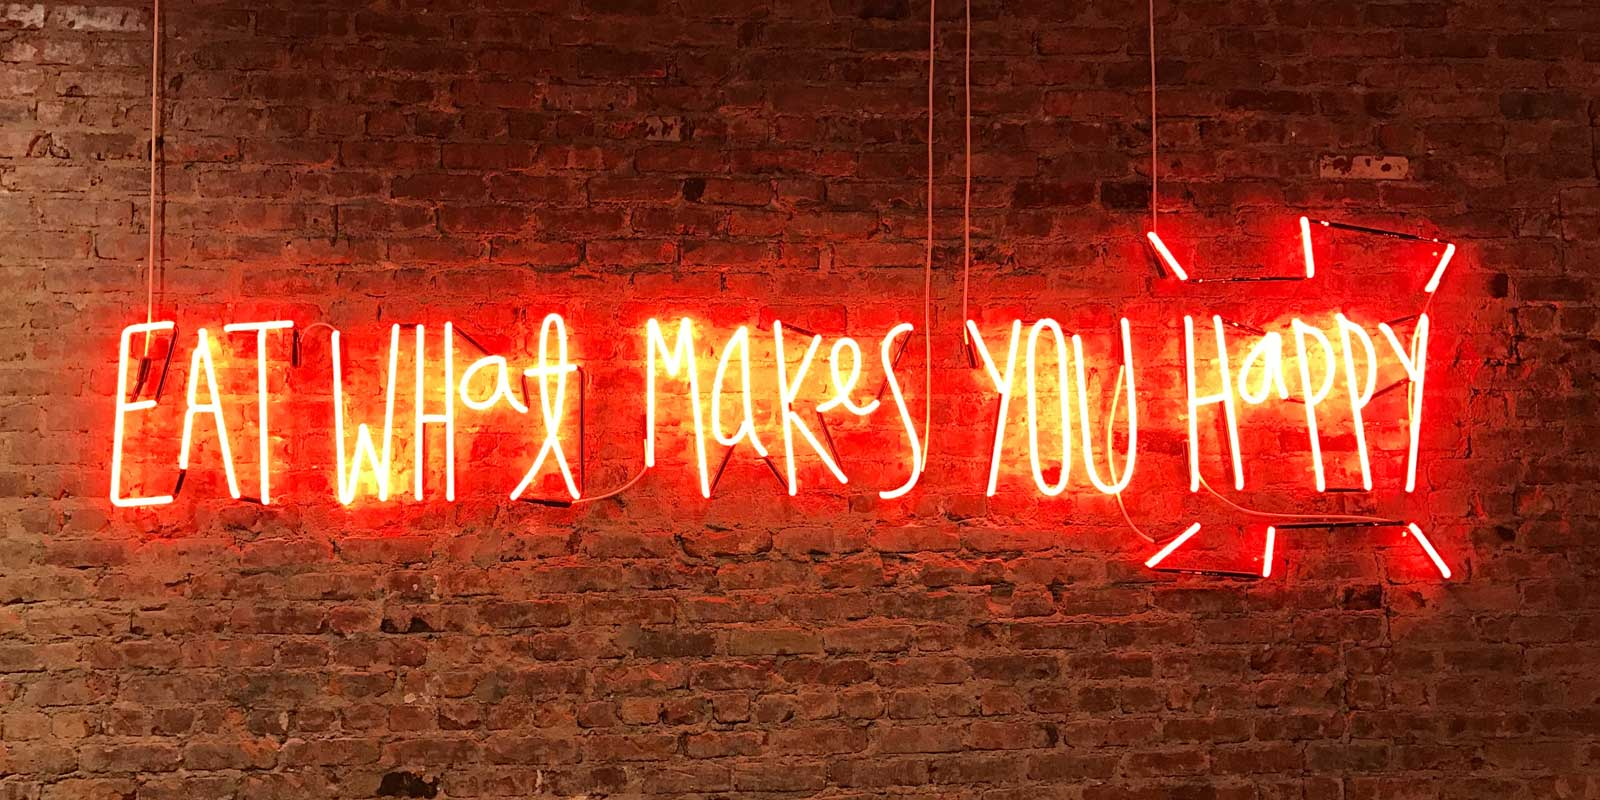 """Closeup of a neon sign that reads """"Eat what makes you happy."""""""